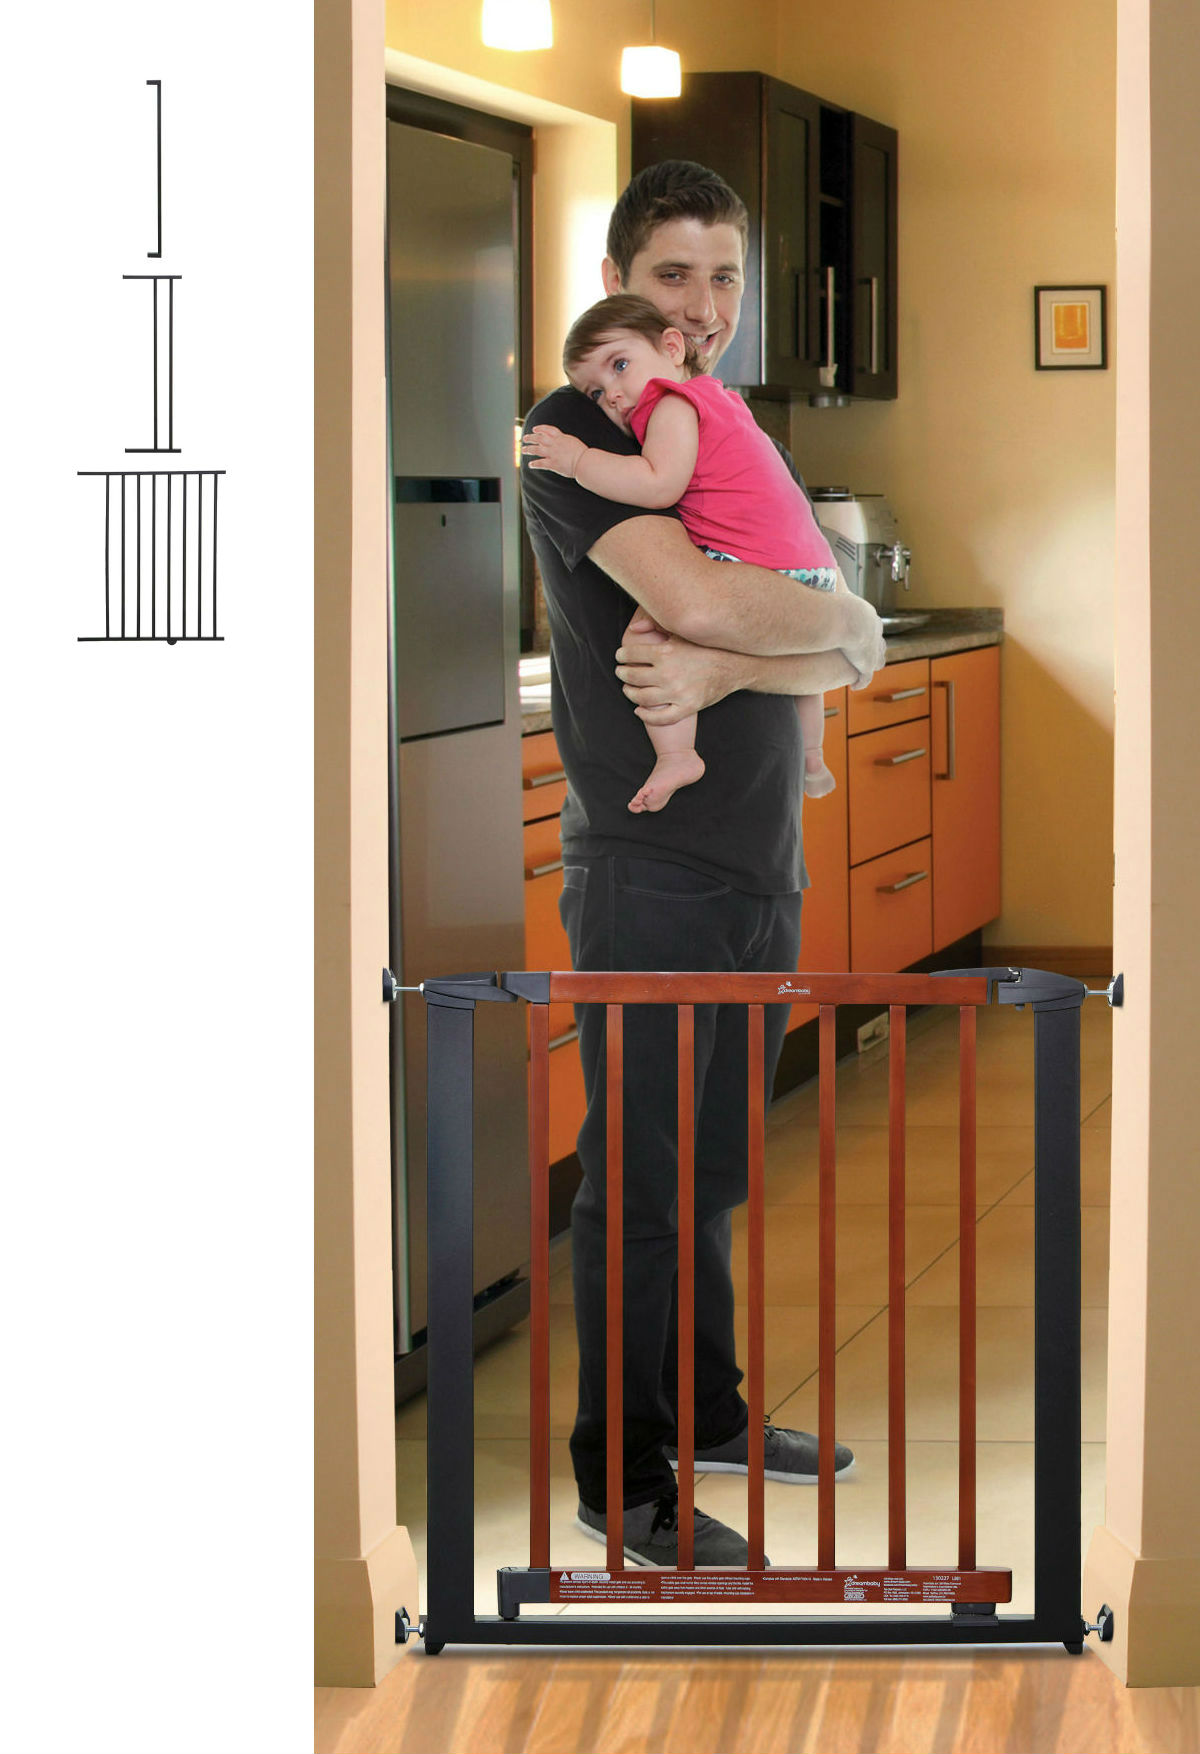 Windsor Pressure Mounted Baby Gate Plus 7 + 22 U2013 Charcoal W/Cherry Color  Wood (59 To 63.5W)